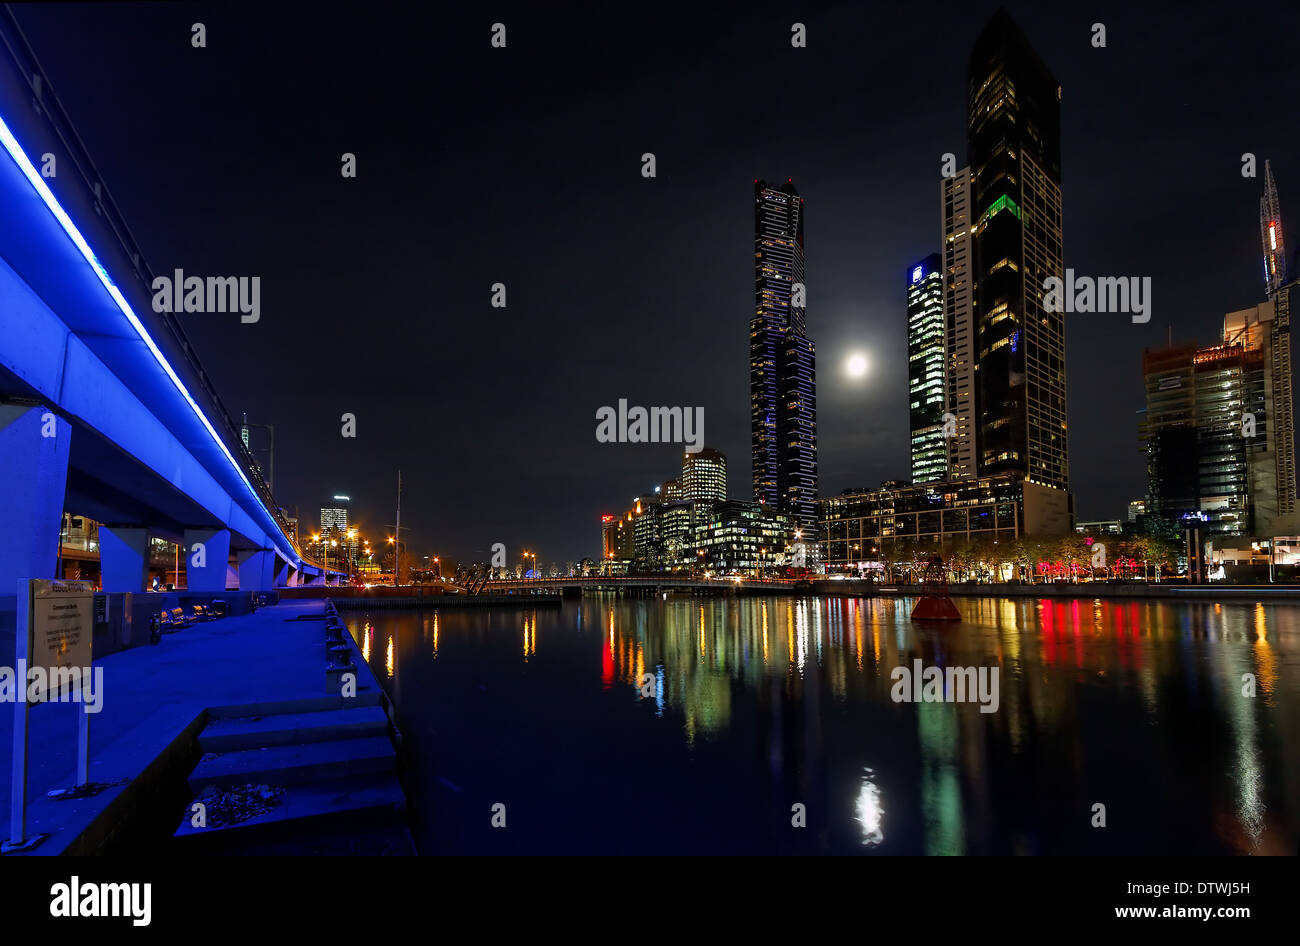 Melbourne at night - Stock Image